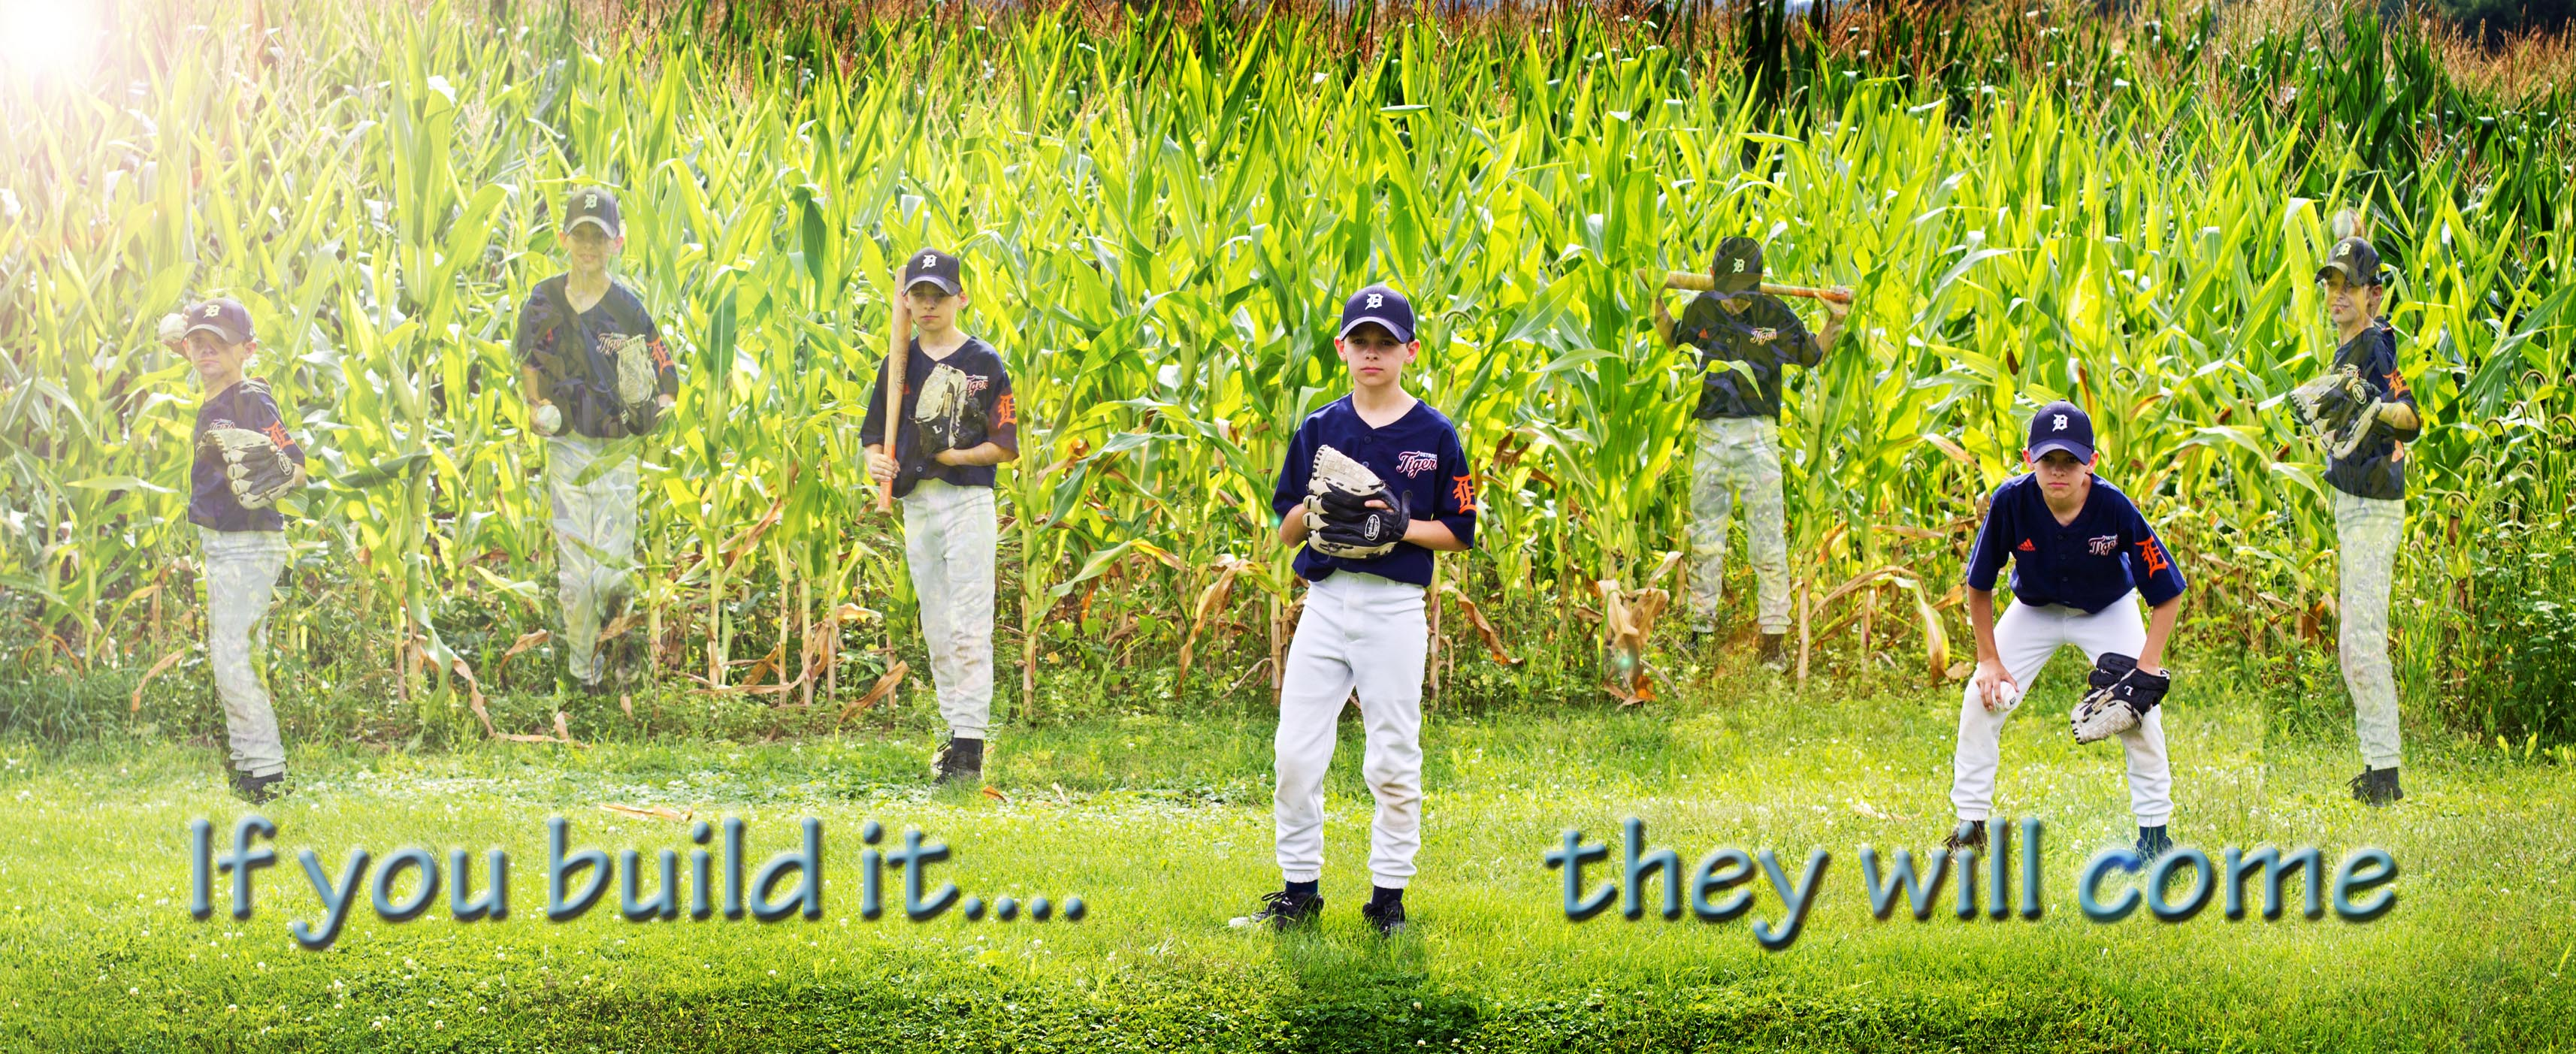 Field of dreams quoteFB.jpg